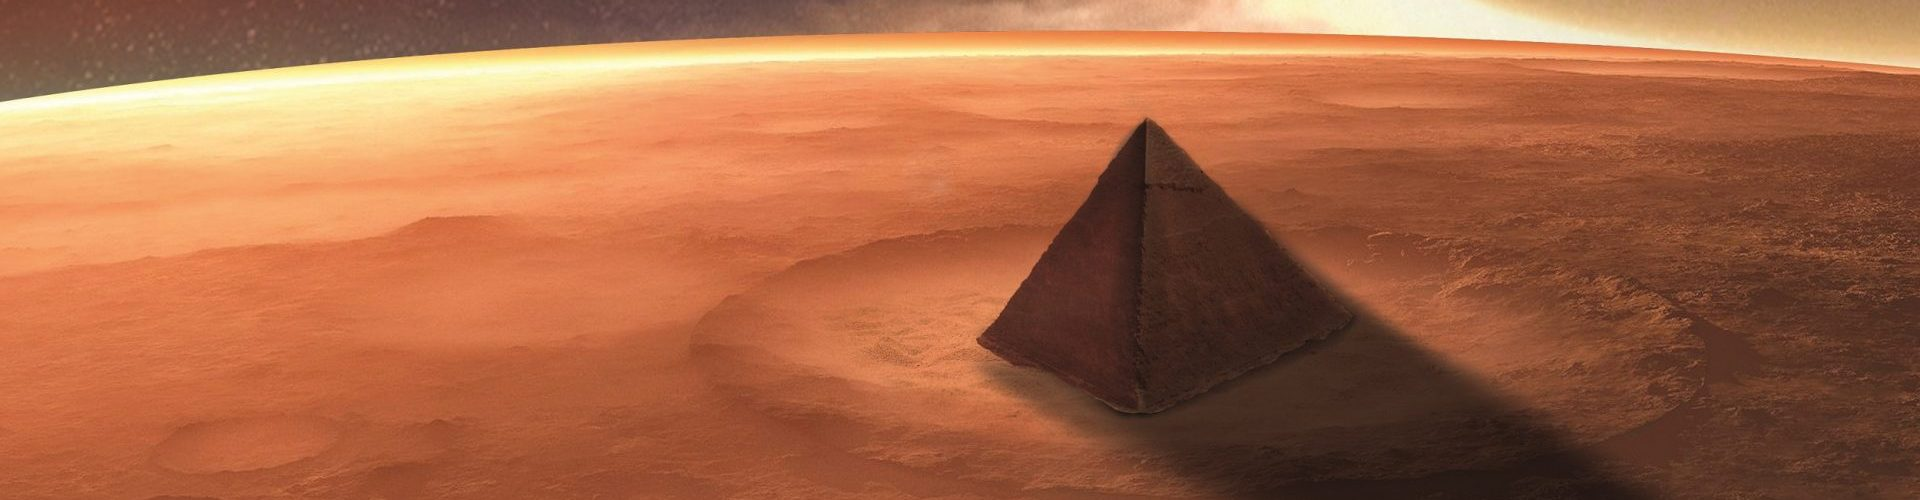 Metal-Review: Pyramids On Mars –  Edge Of the Black